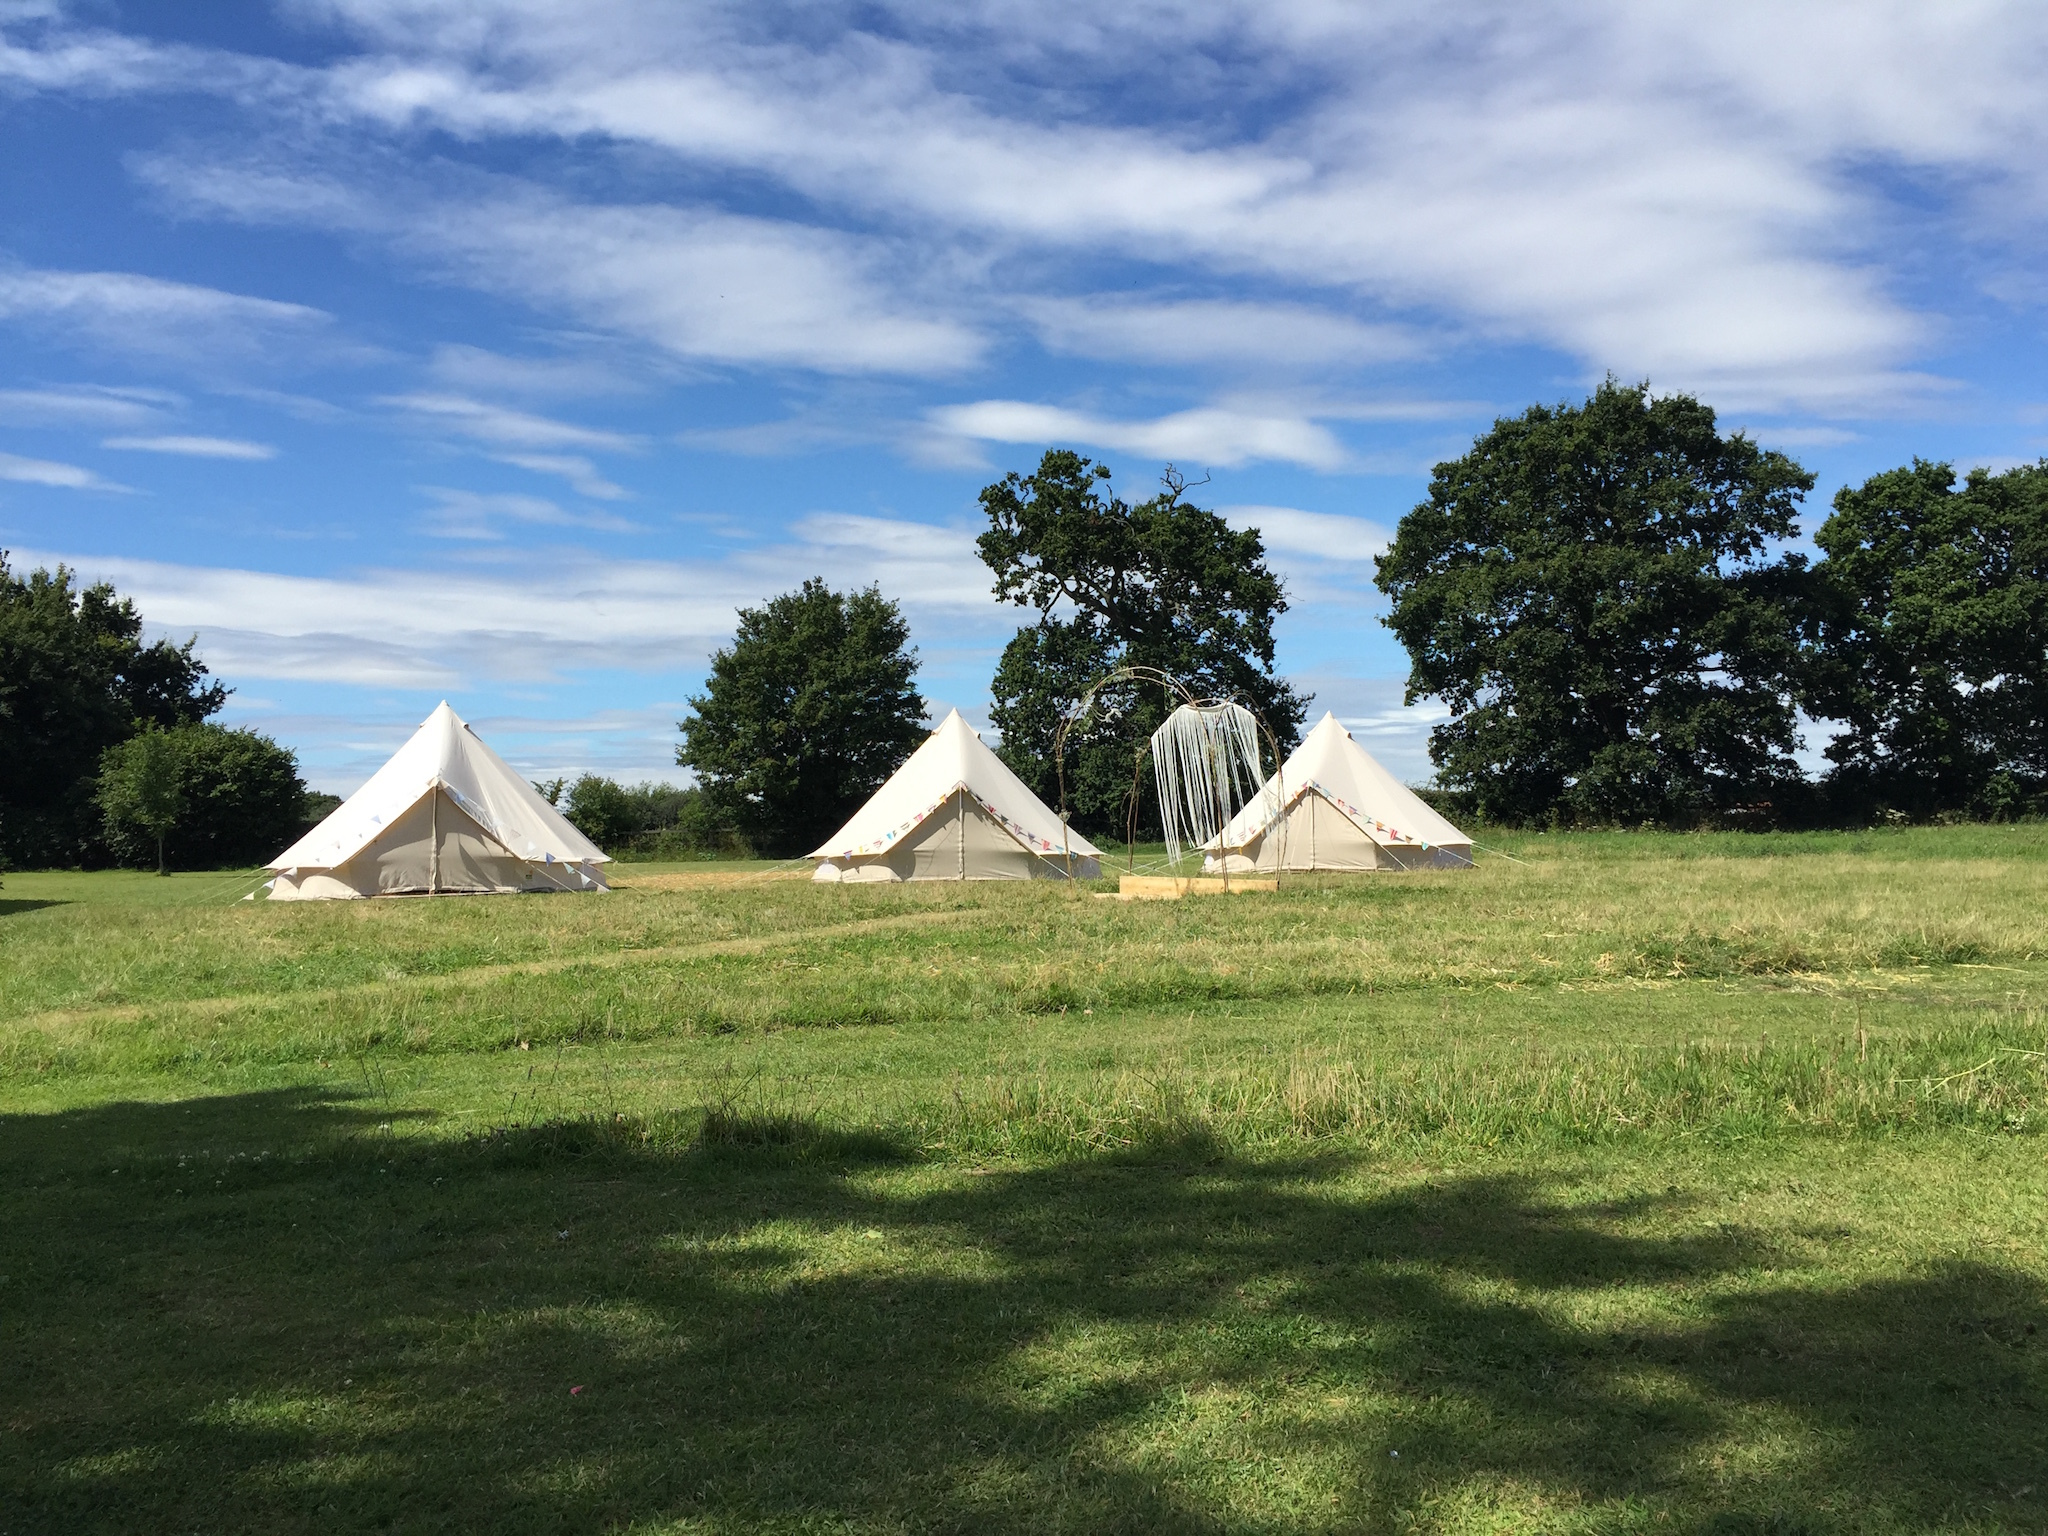 Fire Pit Camp, best campsites near london, 2017